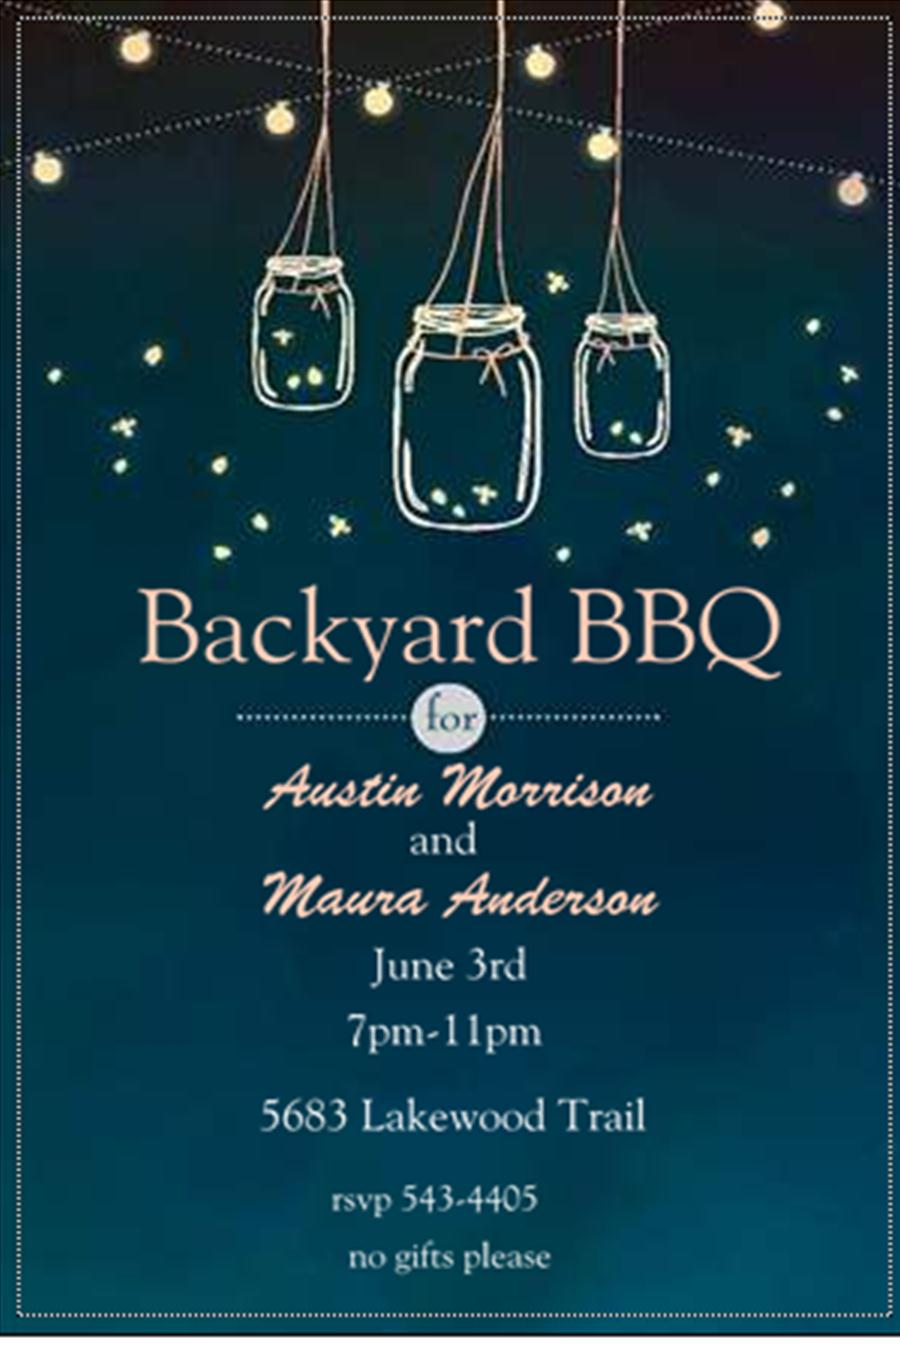 Barbecue Party Invitations- BBQ invitations NEW selections spring 2018